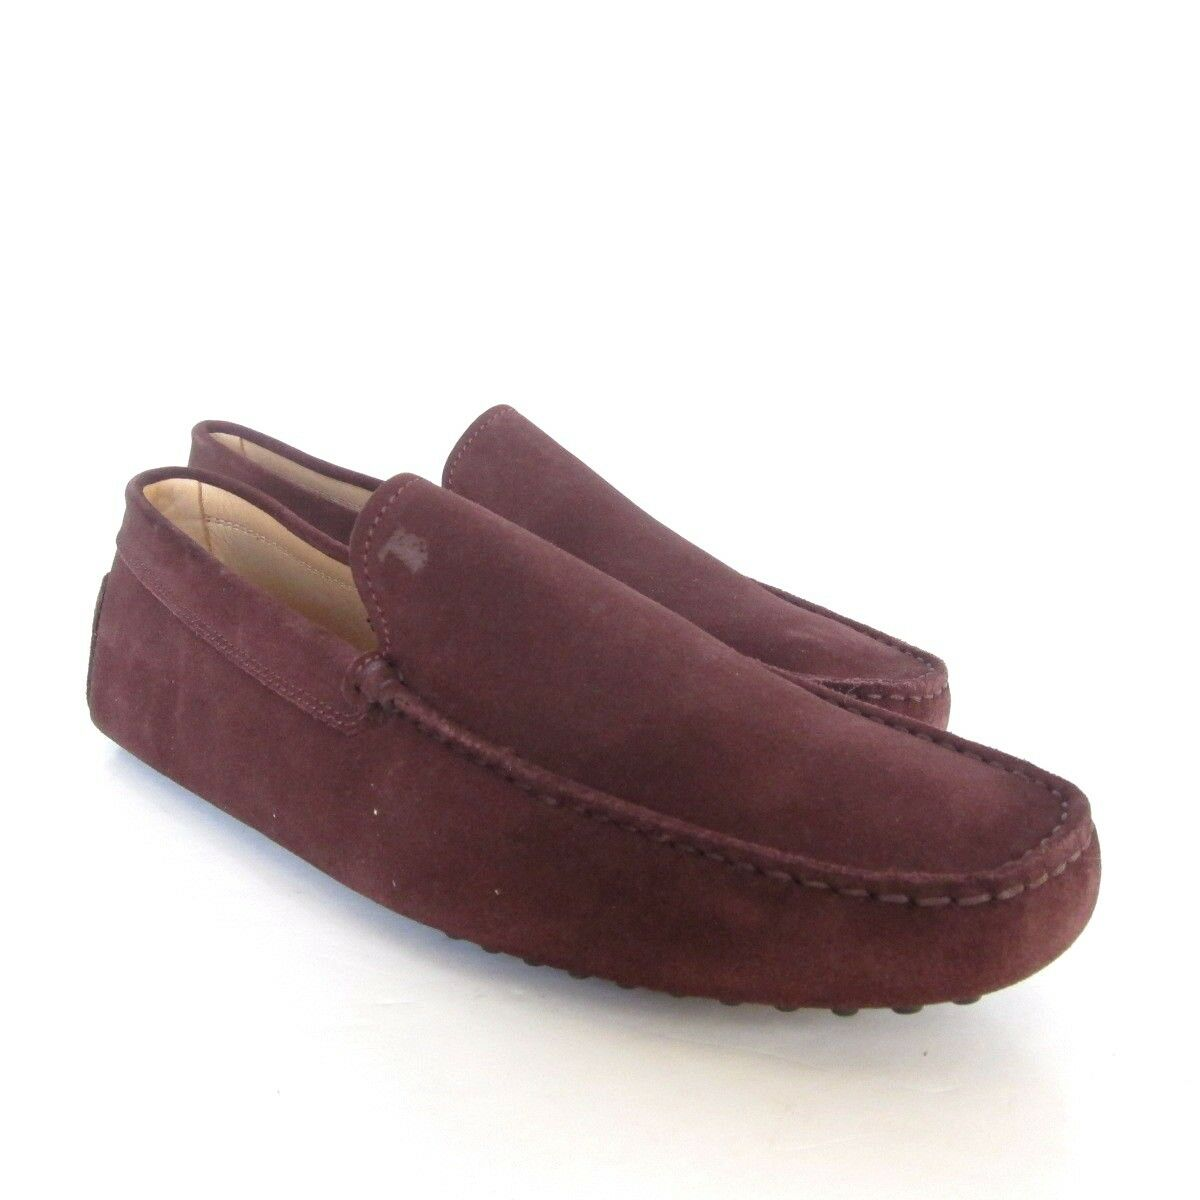 W-2032160 New Tods Brown Suede Gommini Drivers Loafers Size 10.5 US-11.5